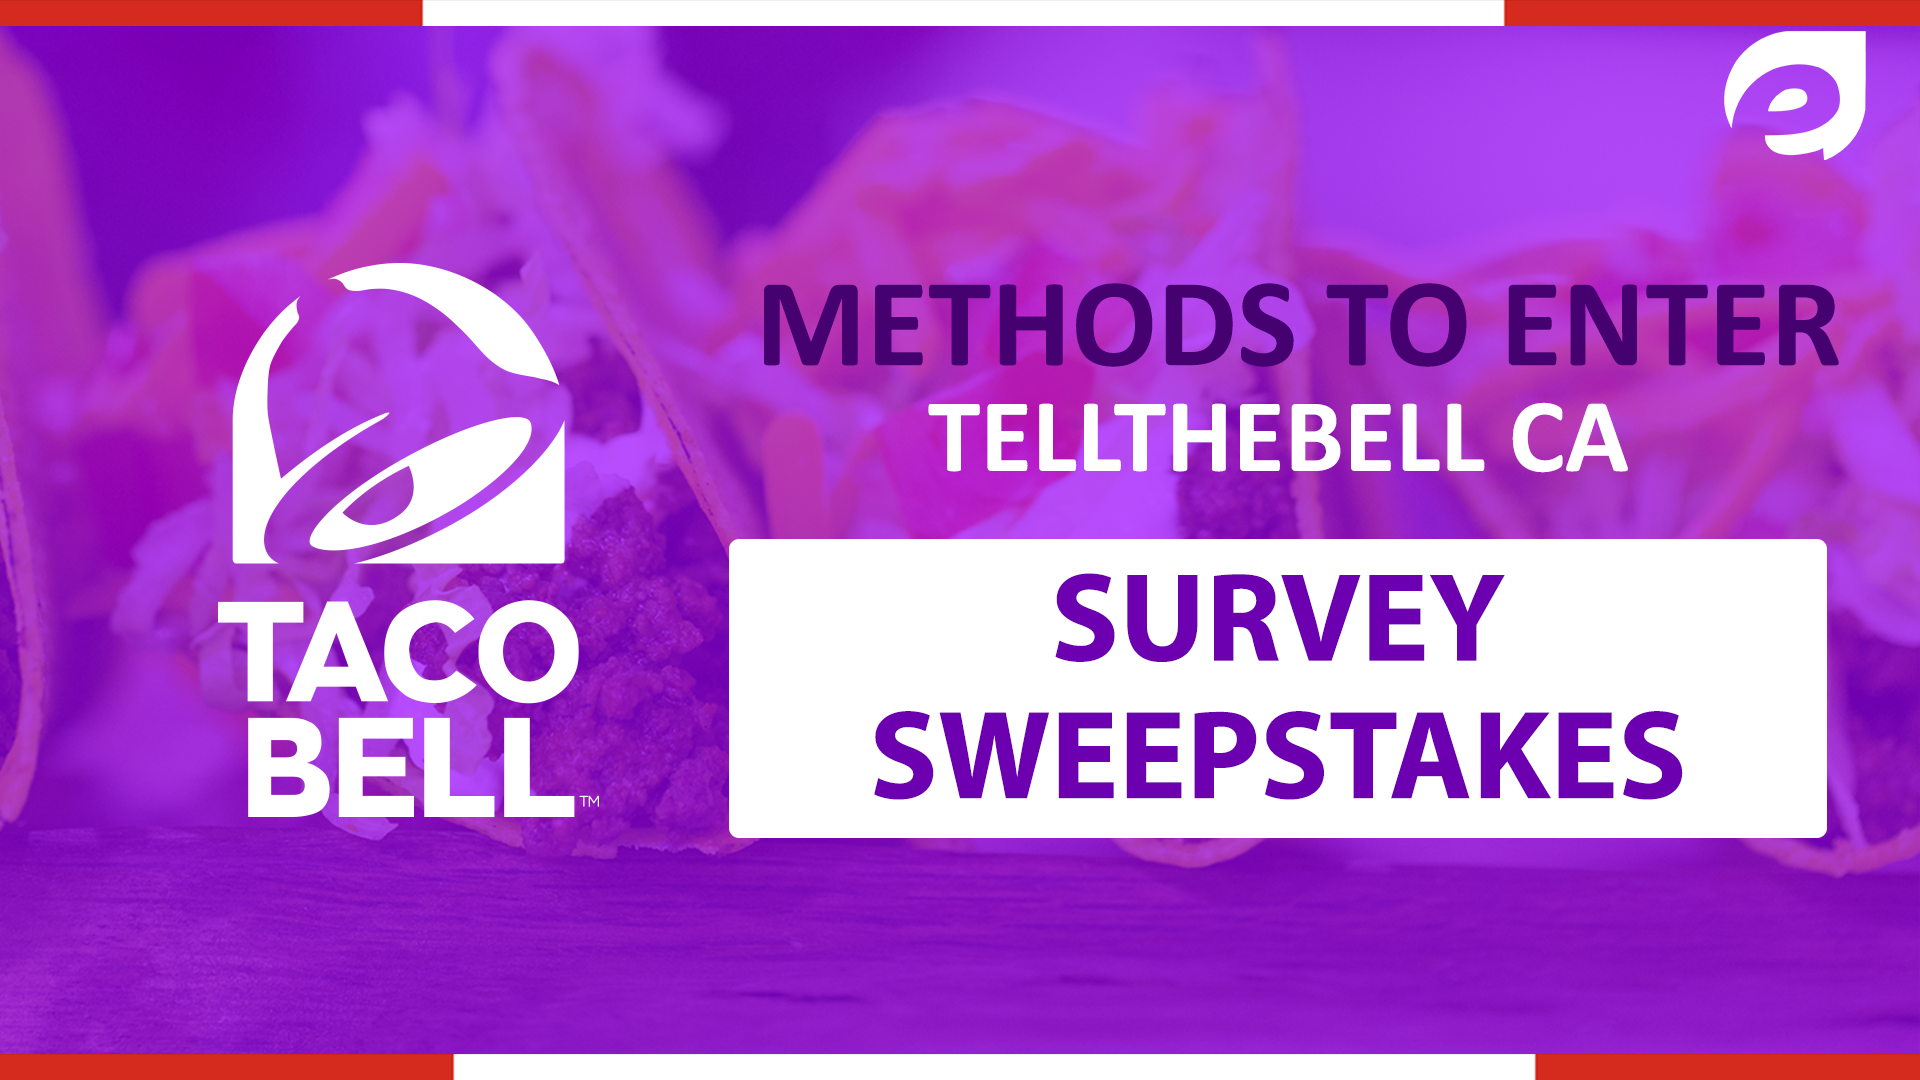 tellthebell canada - methods to enter the survey